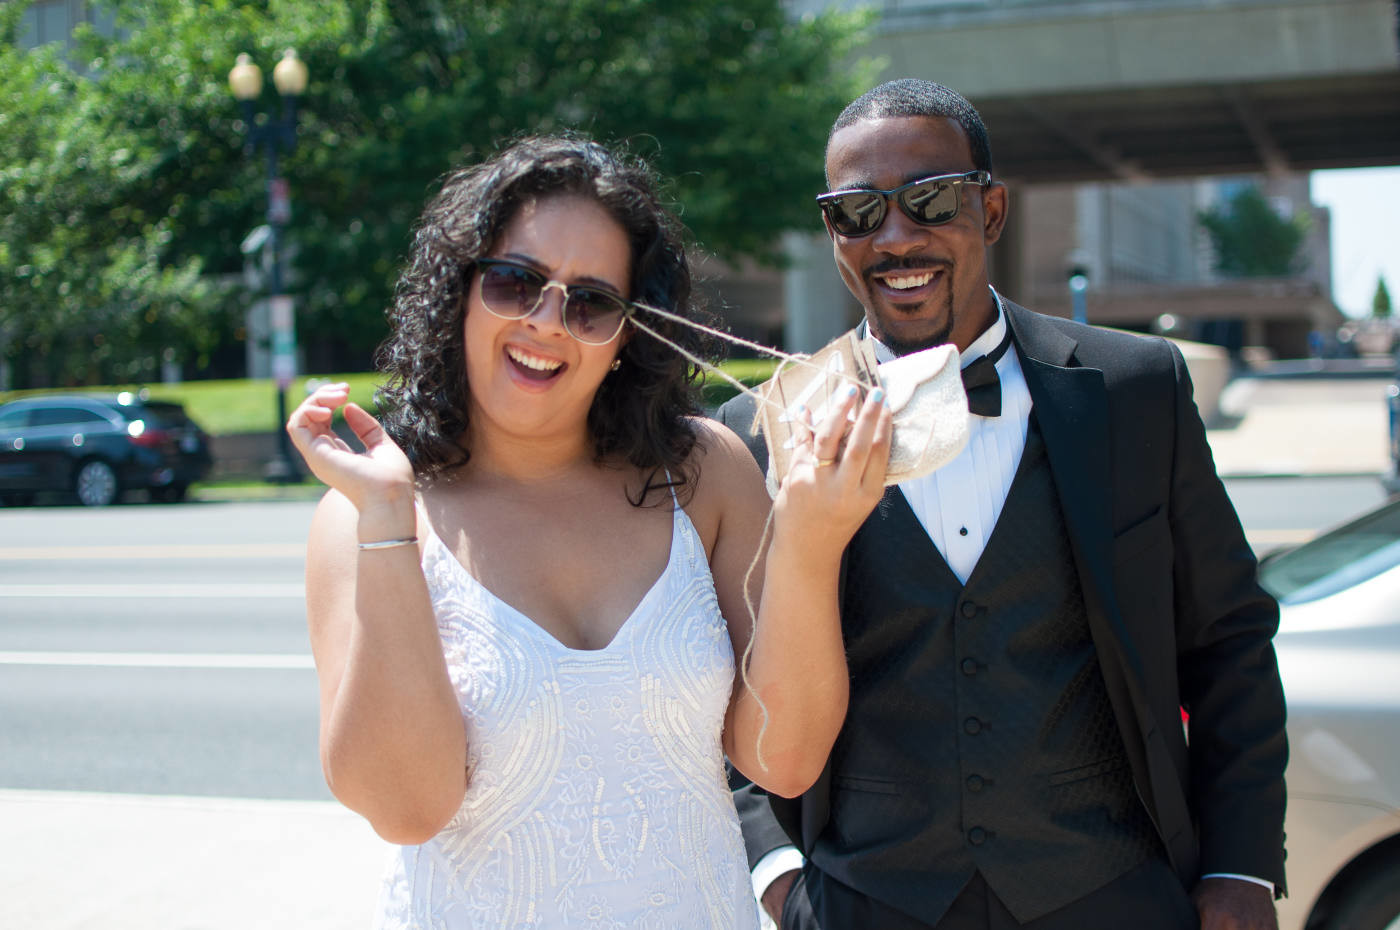 dc courthouse wedding